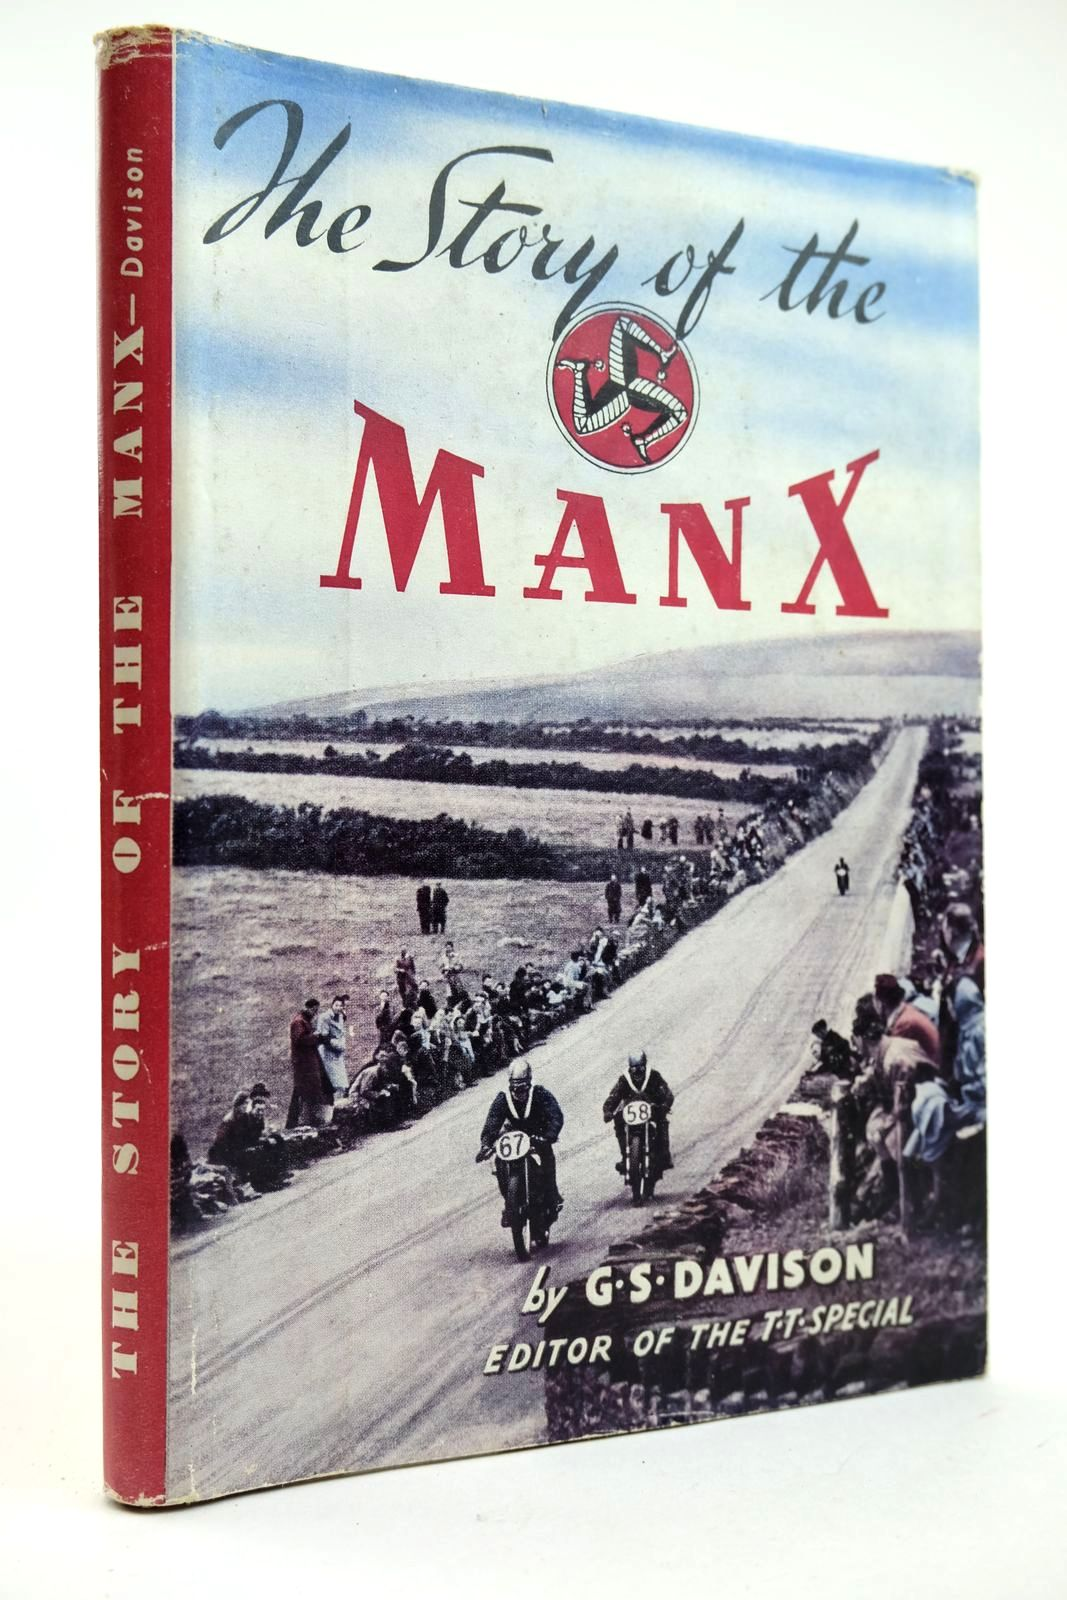 Photo of THE STORY OF THE MANX written by Davison, G.S. published by The T.T. Special (STOCK CODE: 2132289)  for sale by Stella & Rose's Books